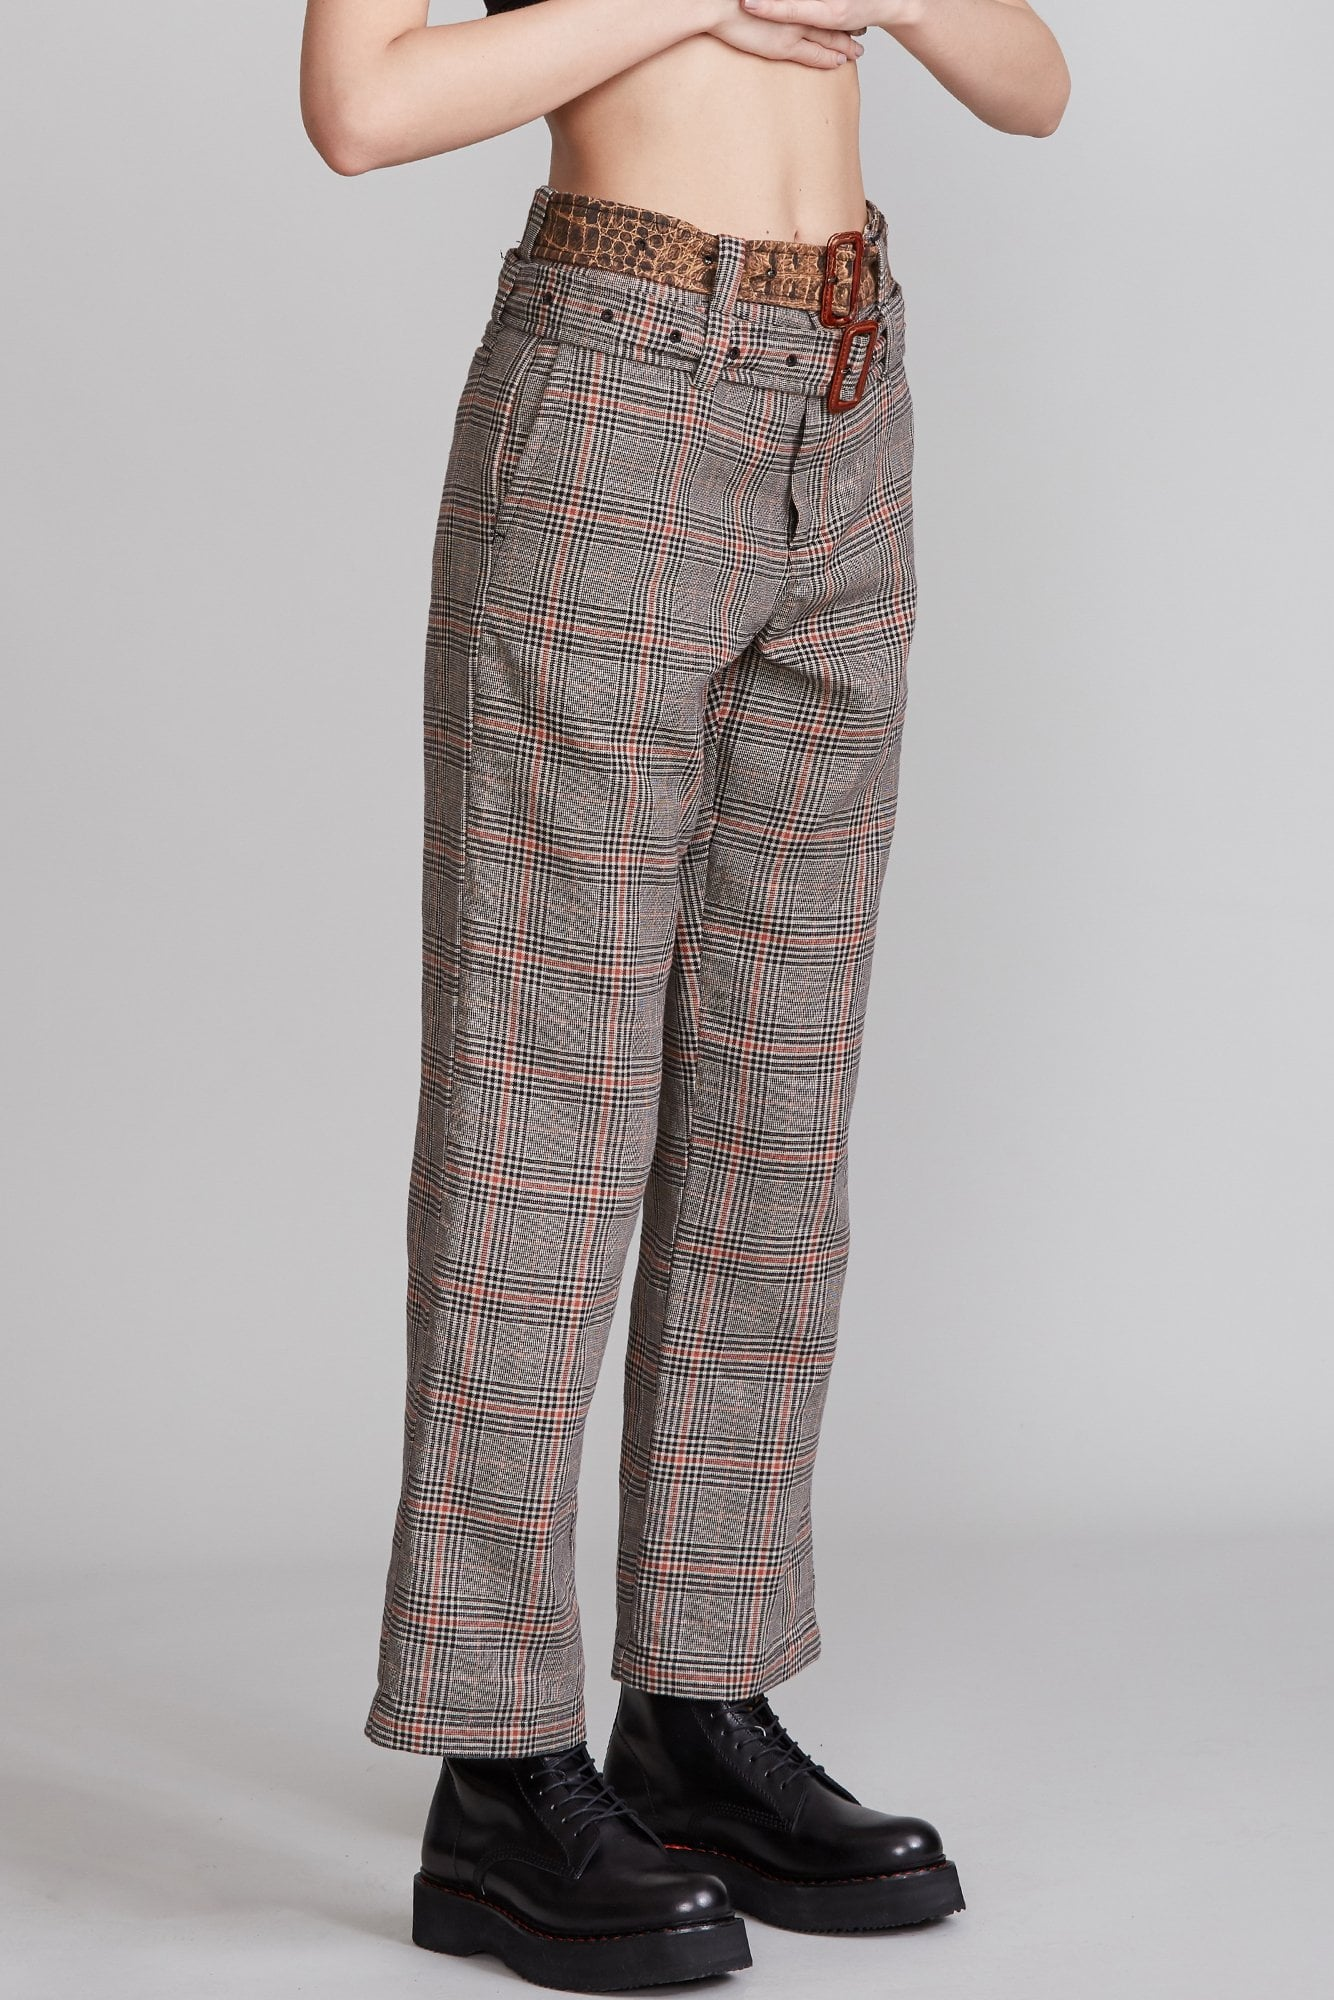 Slouch Pant with Double Belt - Multi Plaid